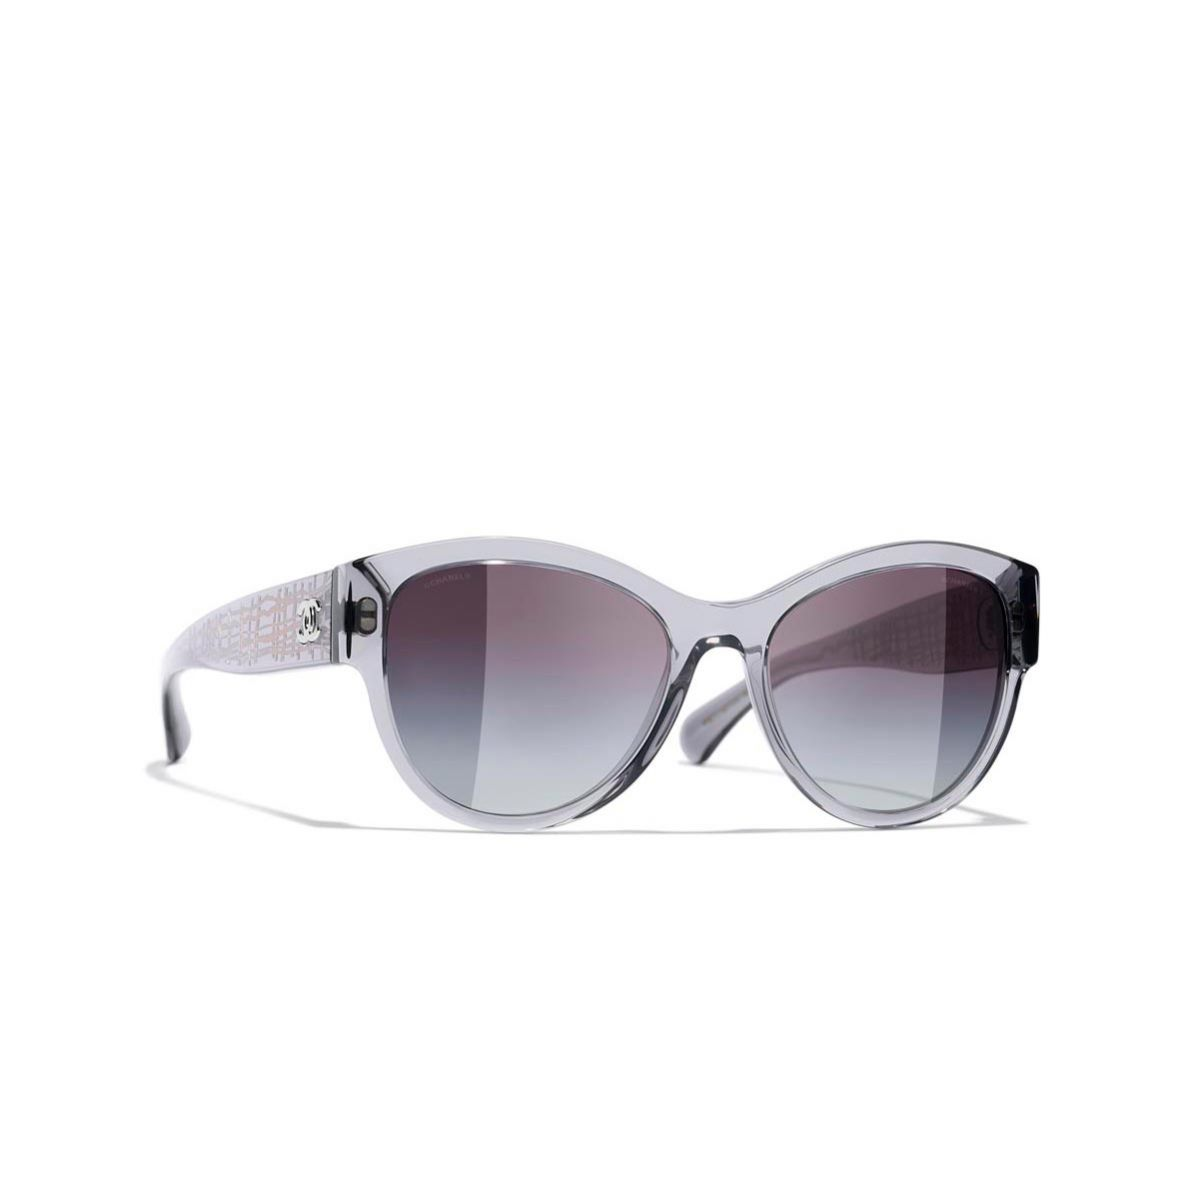 Pantos Sunglasses 300 Sunglasses